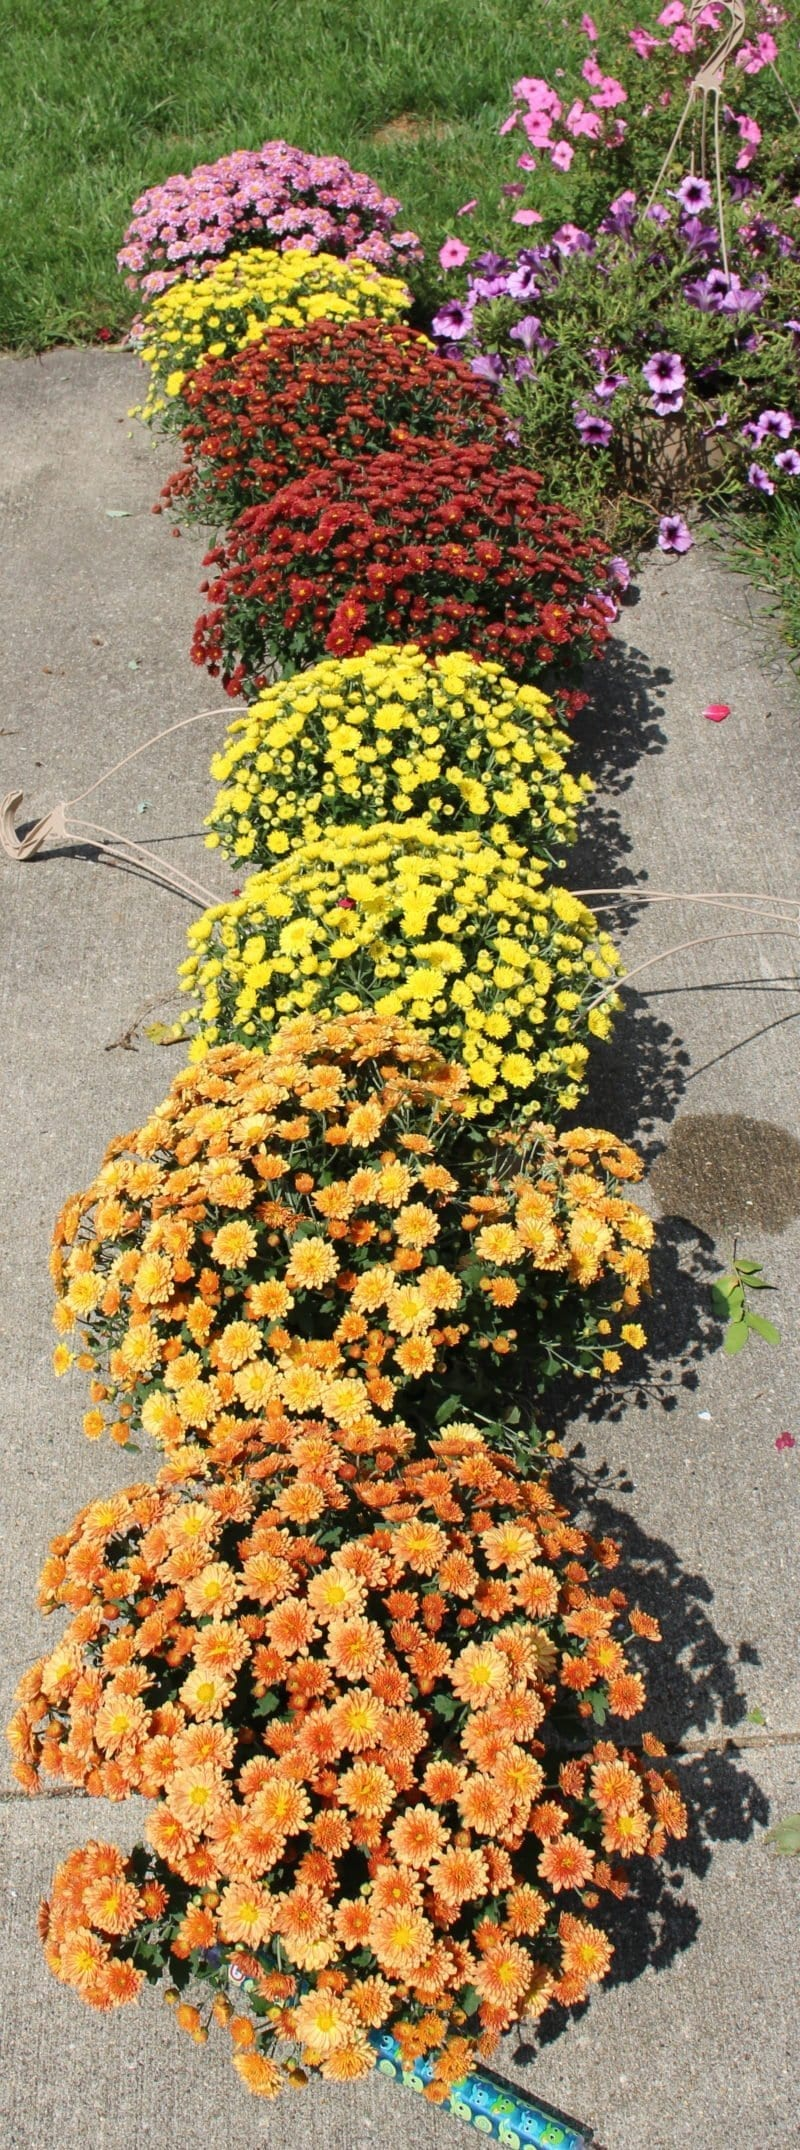 Time to replace the old hanging baskets with some fall mums.